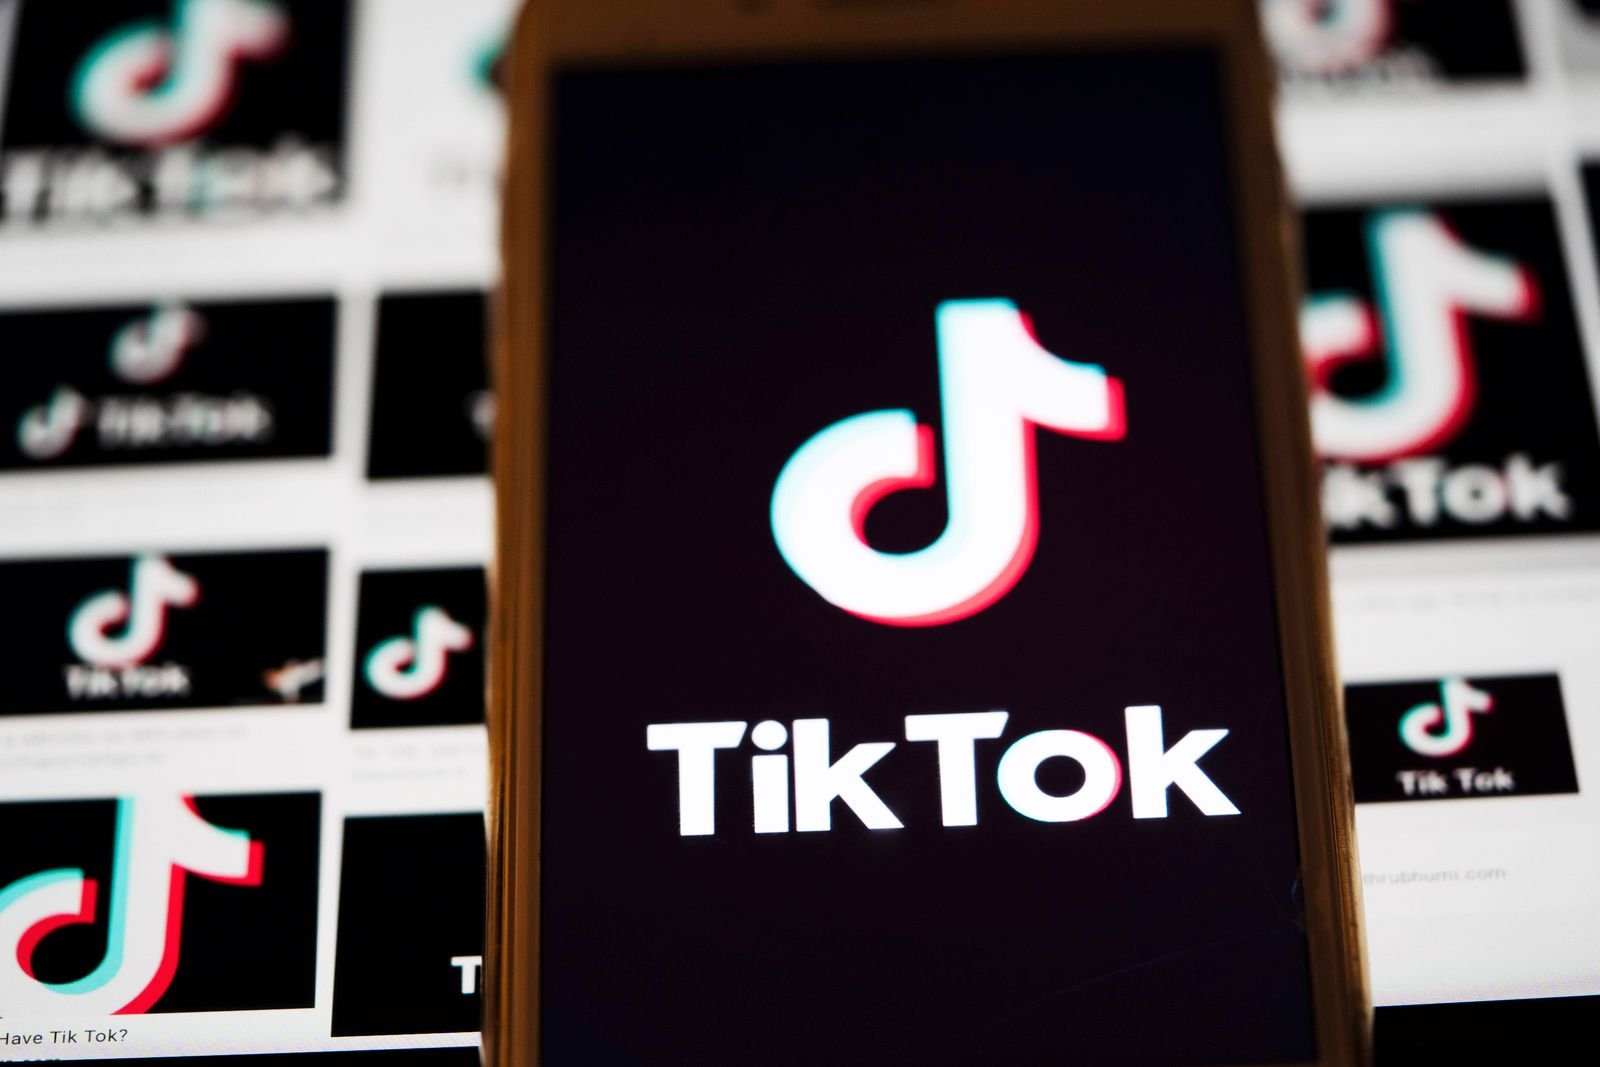 (200804) -- WASHINGTON, Aug. 4, 2020 -- The logo of TikTok is displayed on the screen of a smartphone on a computer scr